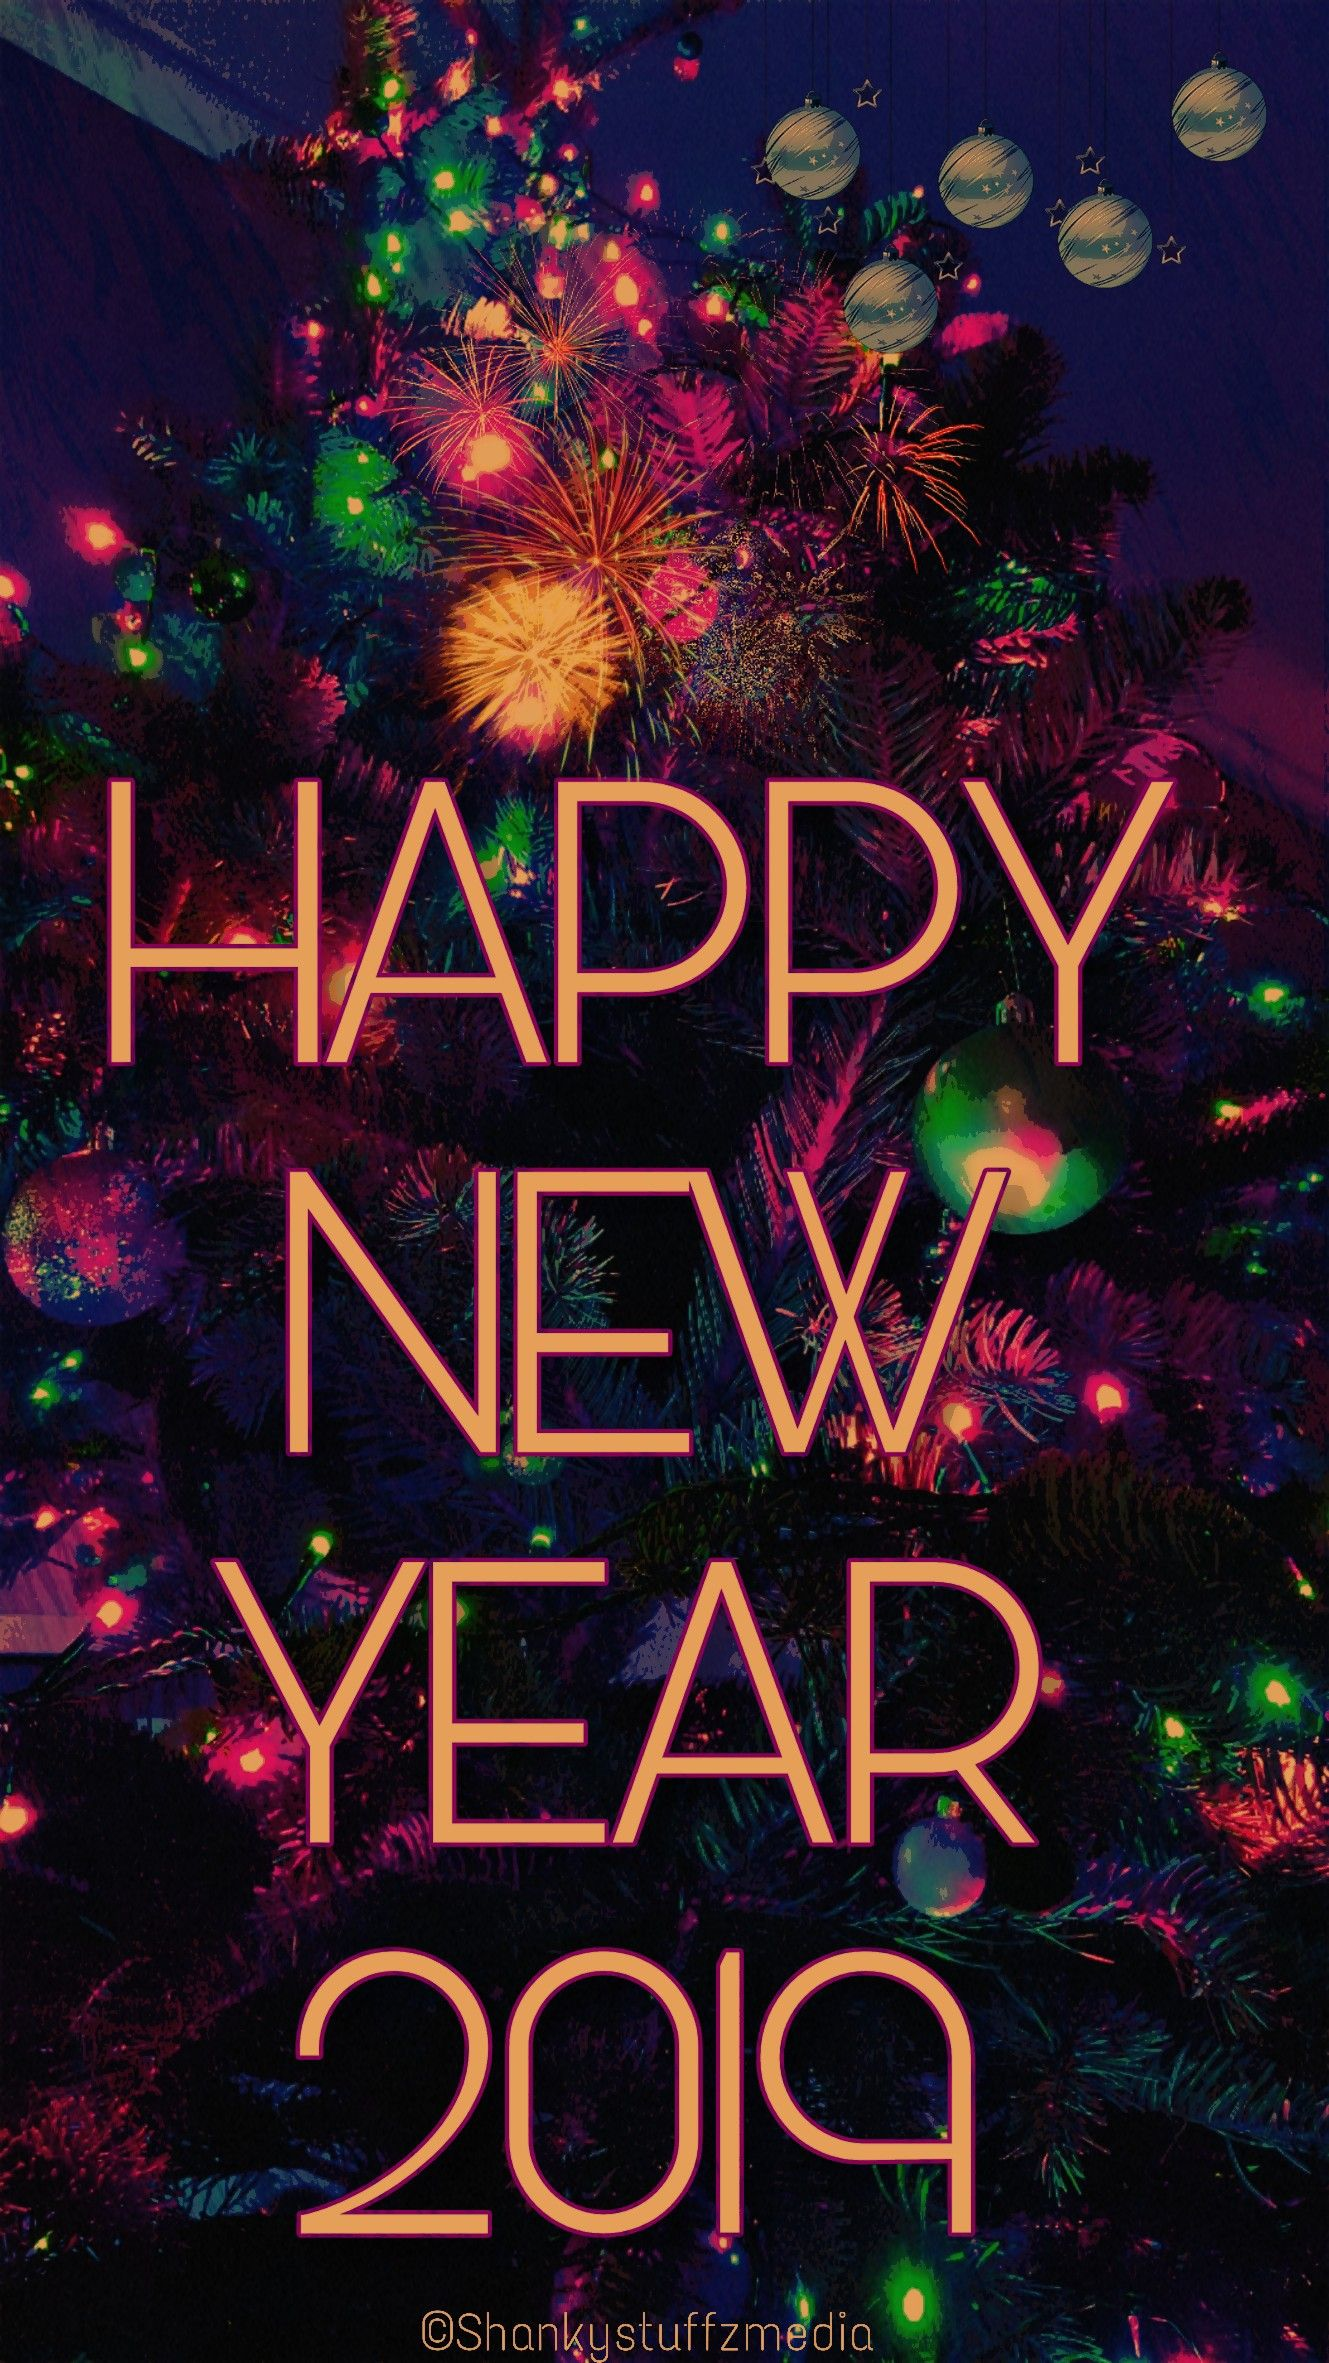 Happy new year 2019 wishes cards greetings images messages